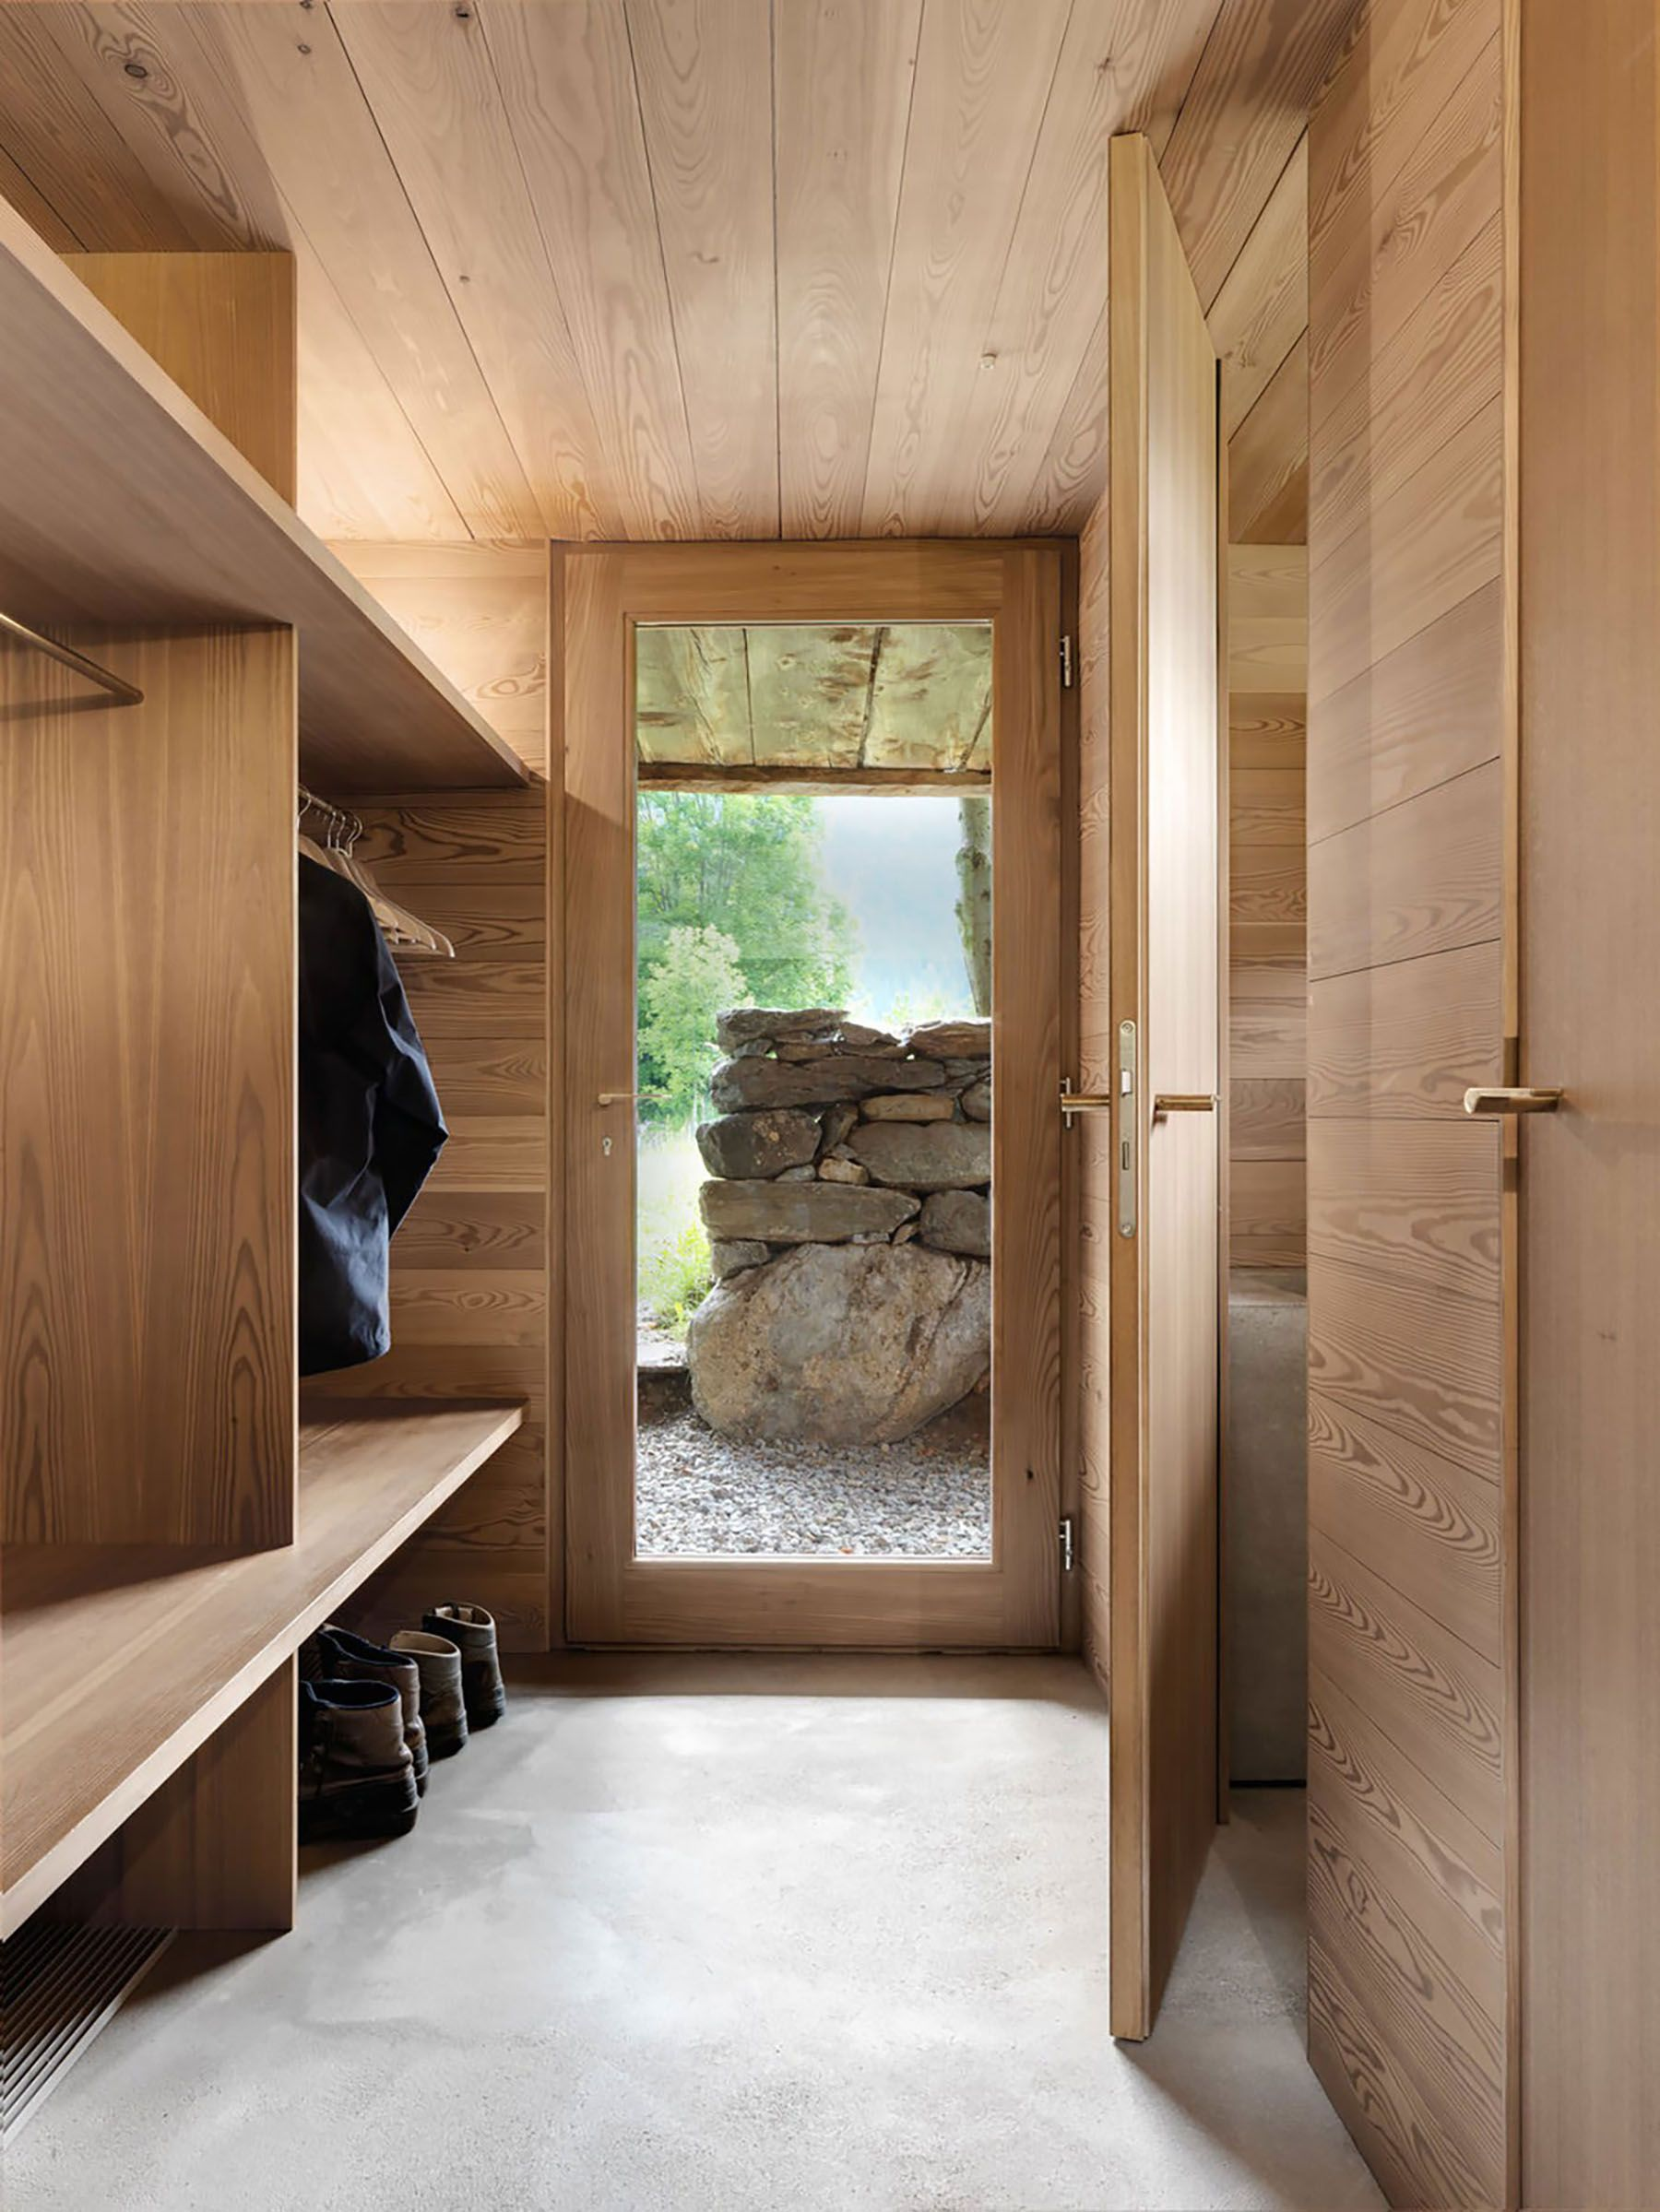 Architecture D'intérieur Vevey A Tiny Cabin In The Swiss Alps Mudroom Chalet Interior House